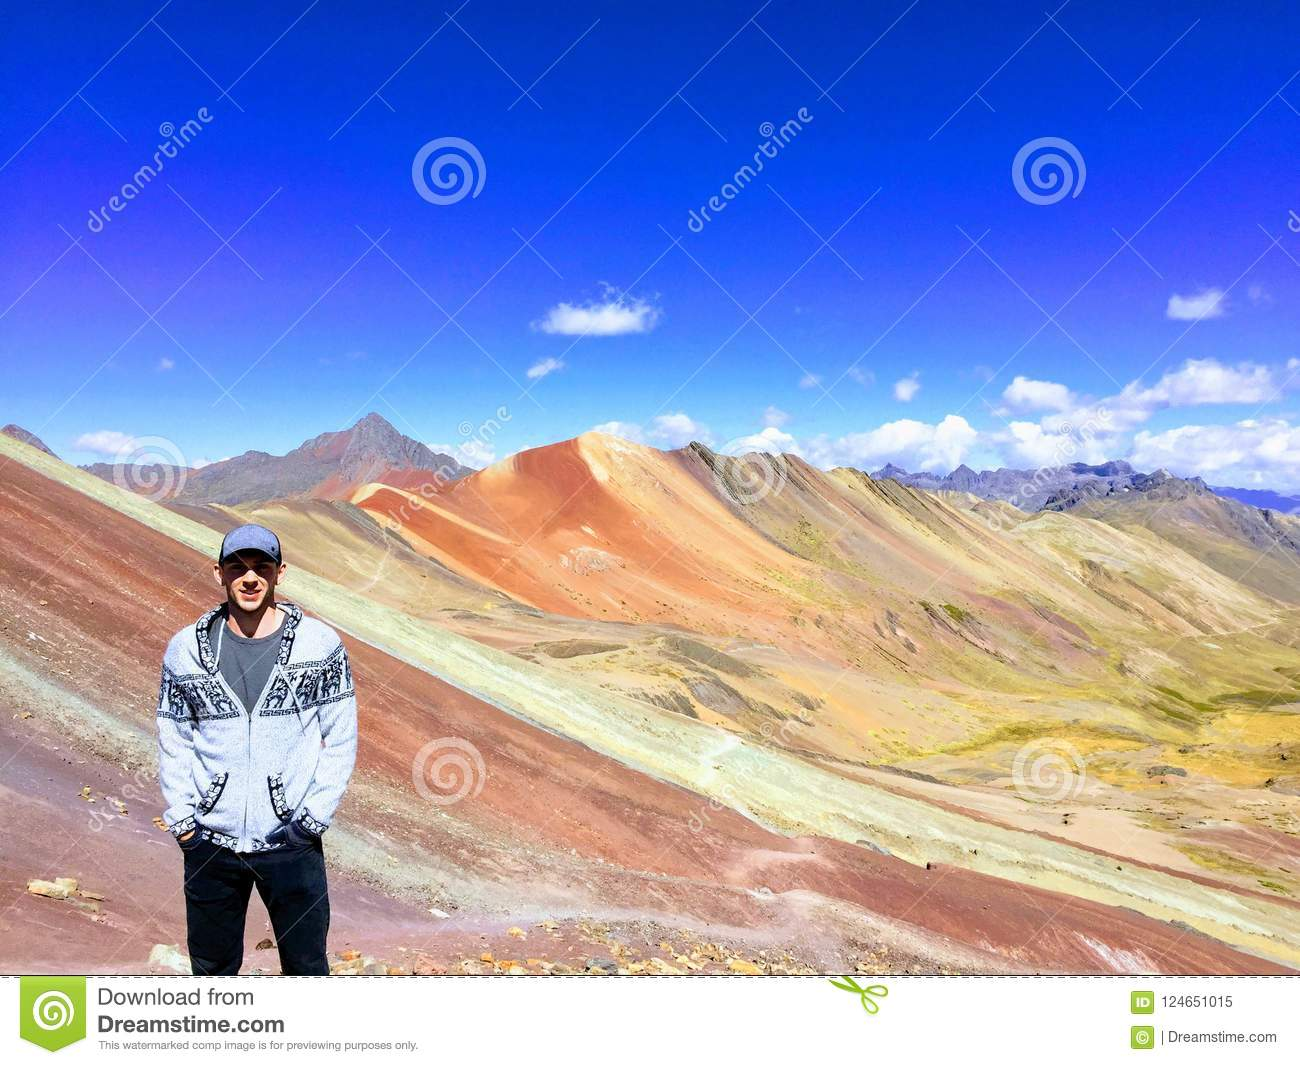 c2c5d2fbc A Man Enjoying The View Of The Incredible Rainbow Mountains Outs ...